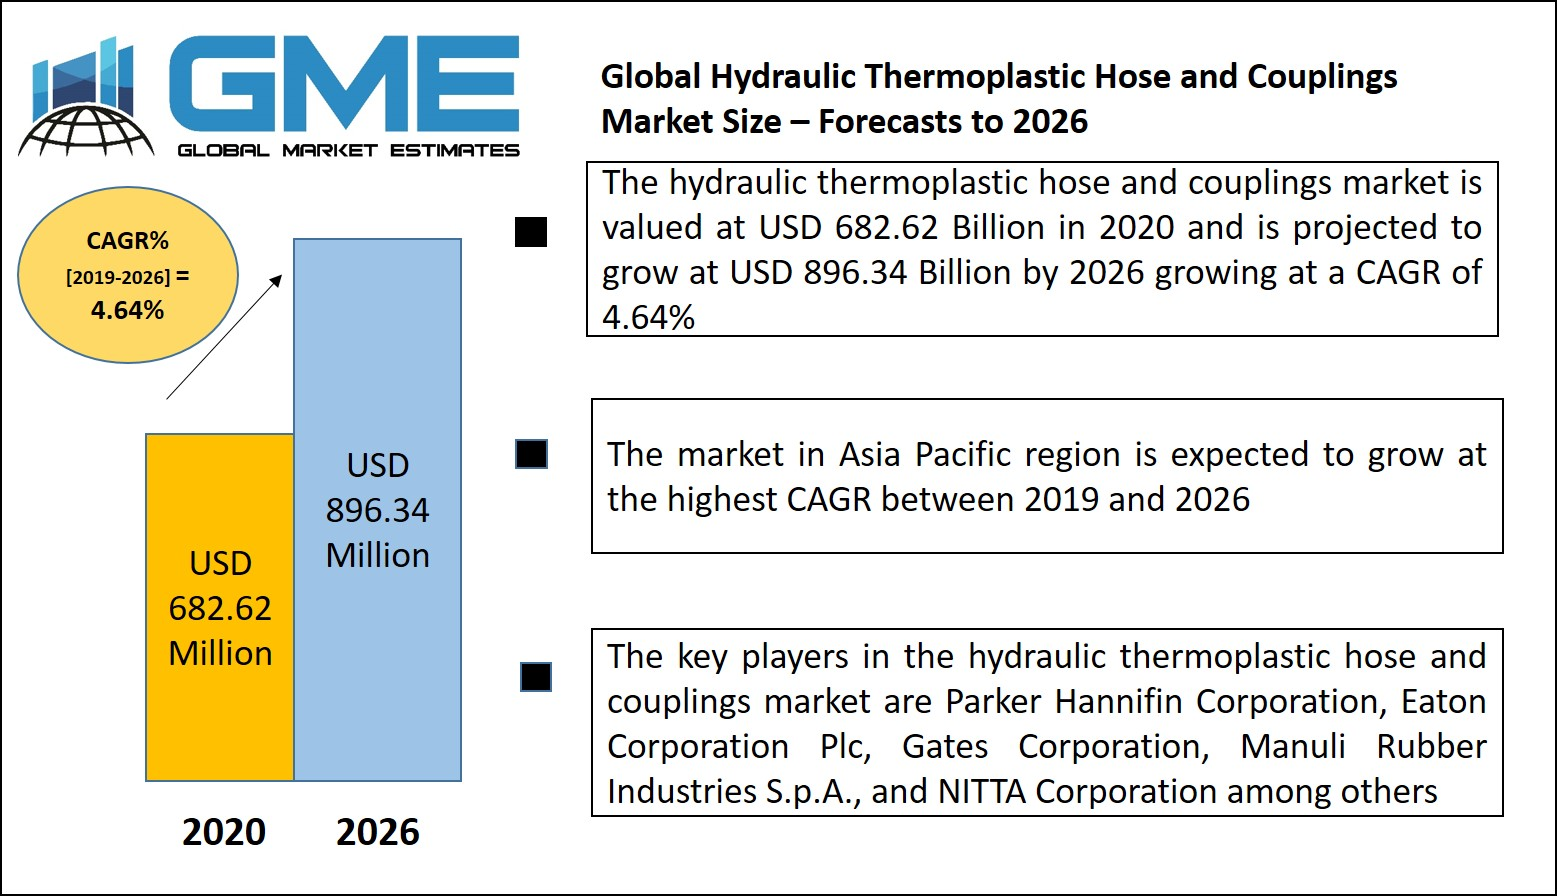 Hydraulic Thermoplastic Hose and Couplings Market